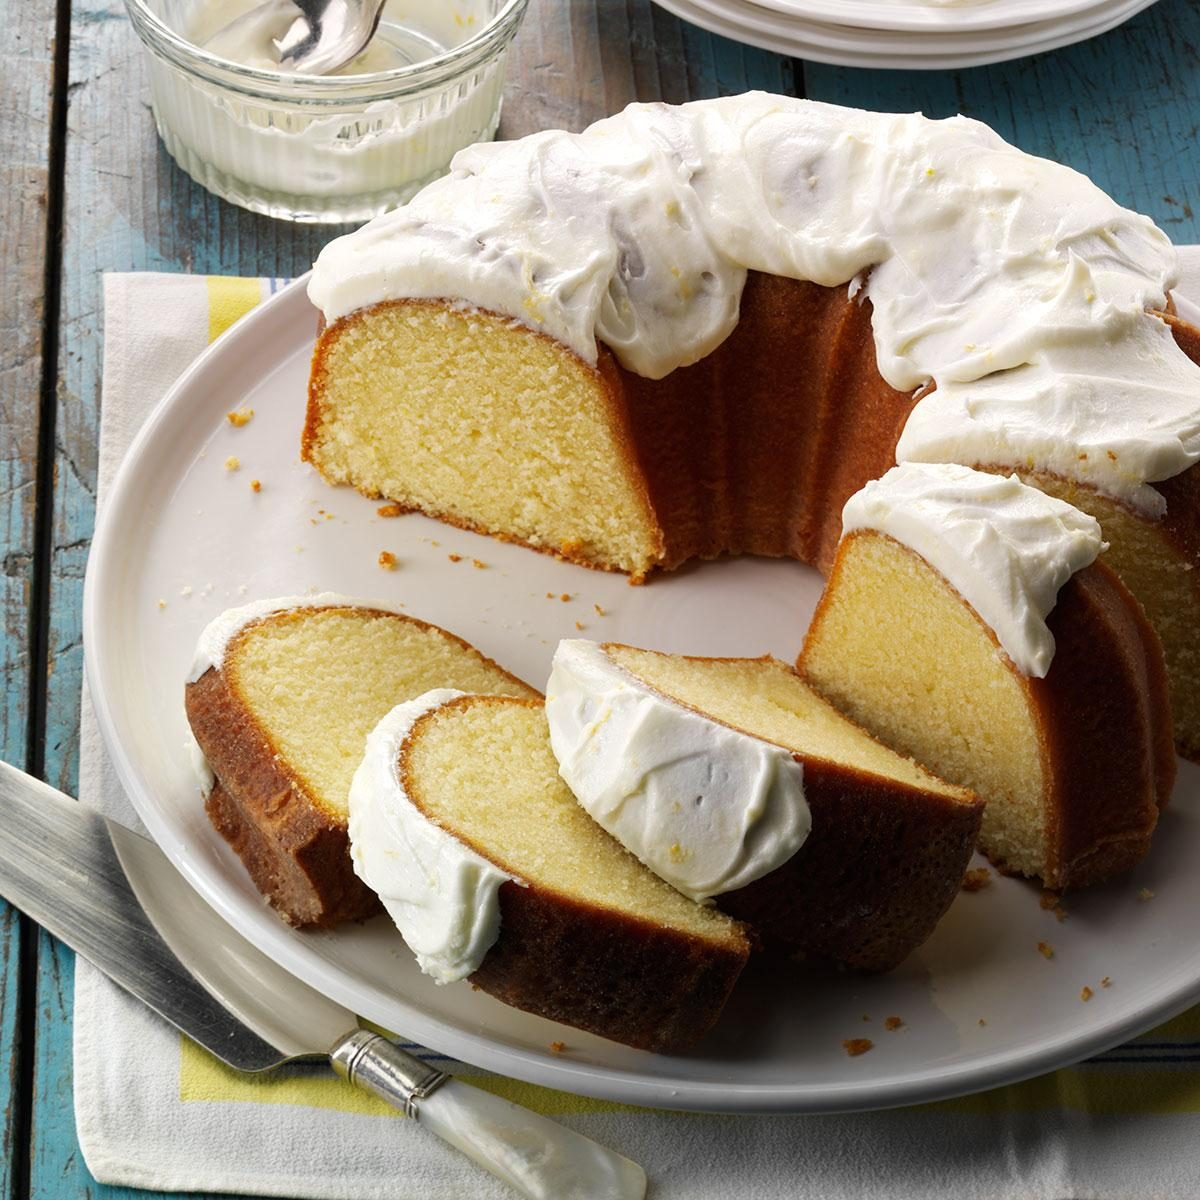 How Long To Cook Pound Cake In Bundt Pan